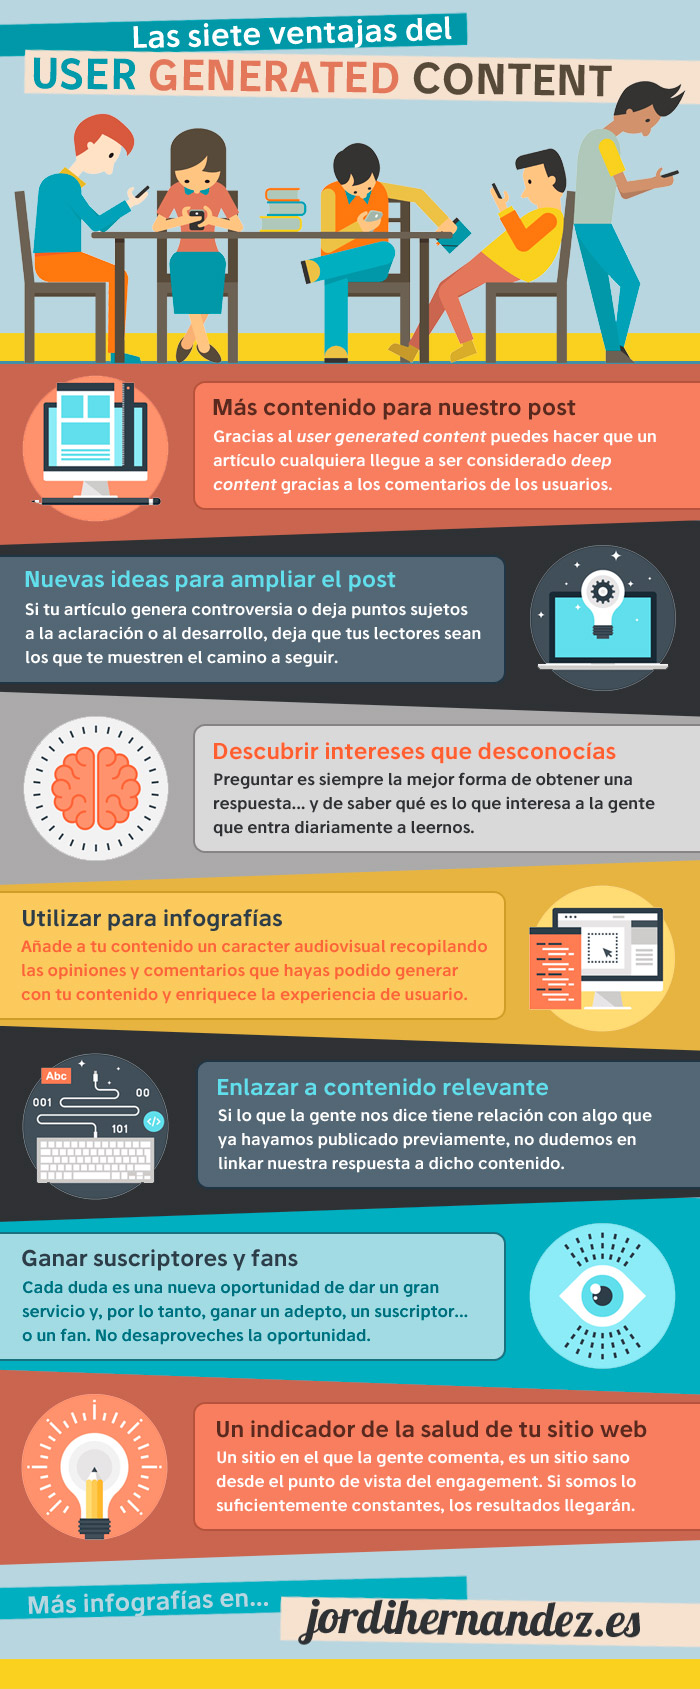 Los 7 beneficios del user generated content